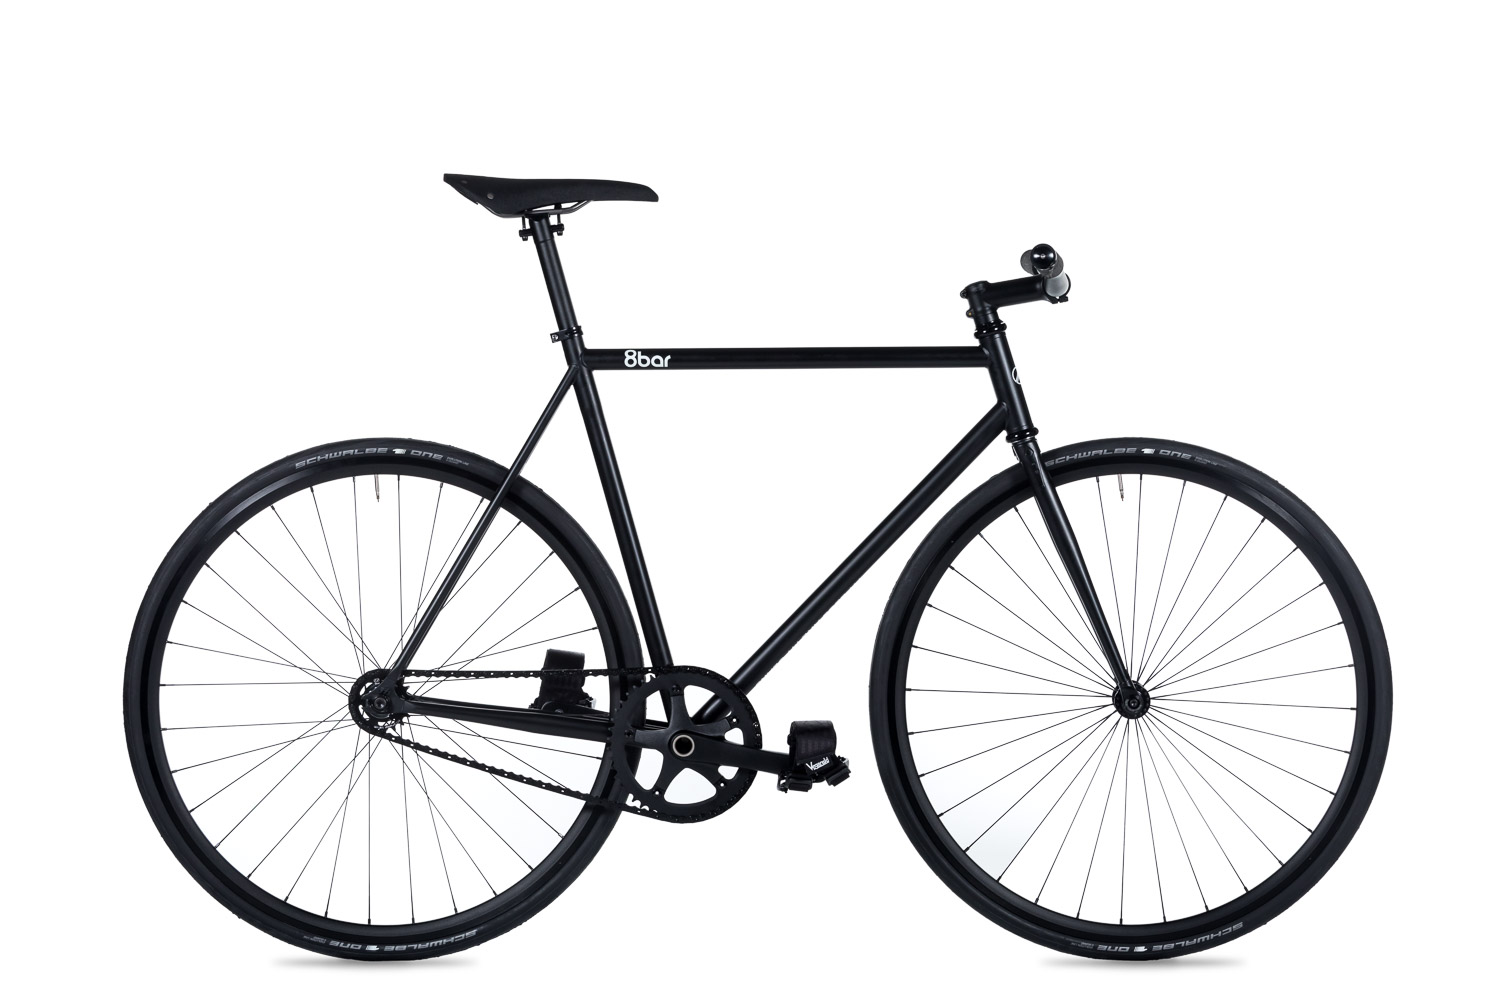 8bar-complete-bike-fhain-steel-pro-urban-riser-black-studio-fixed-gear-fixie-lr-1